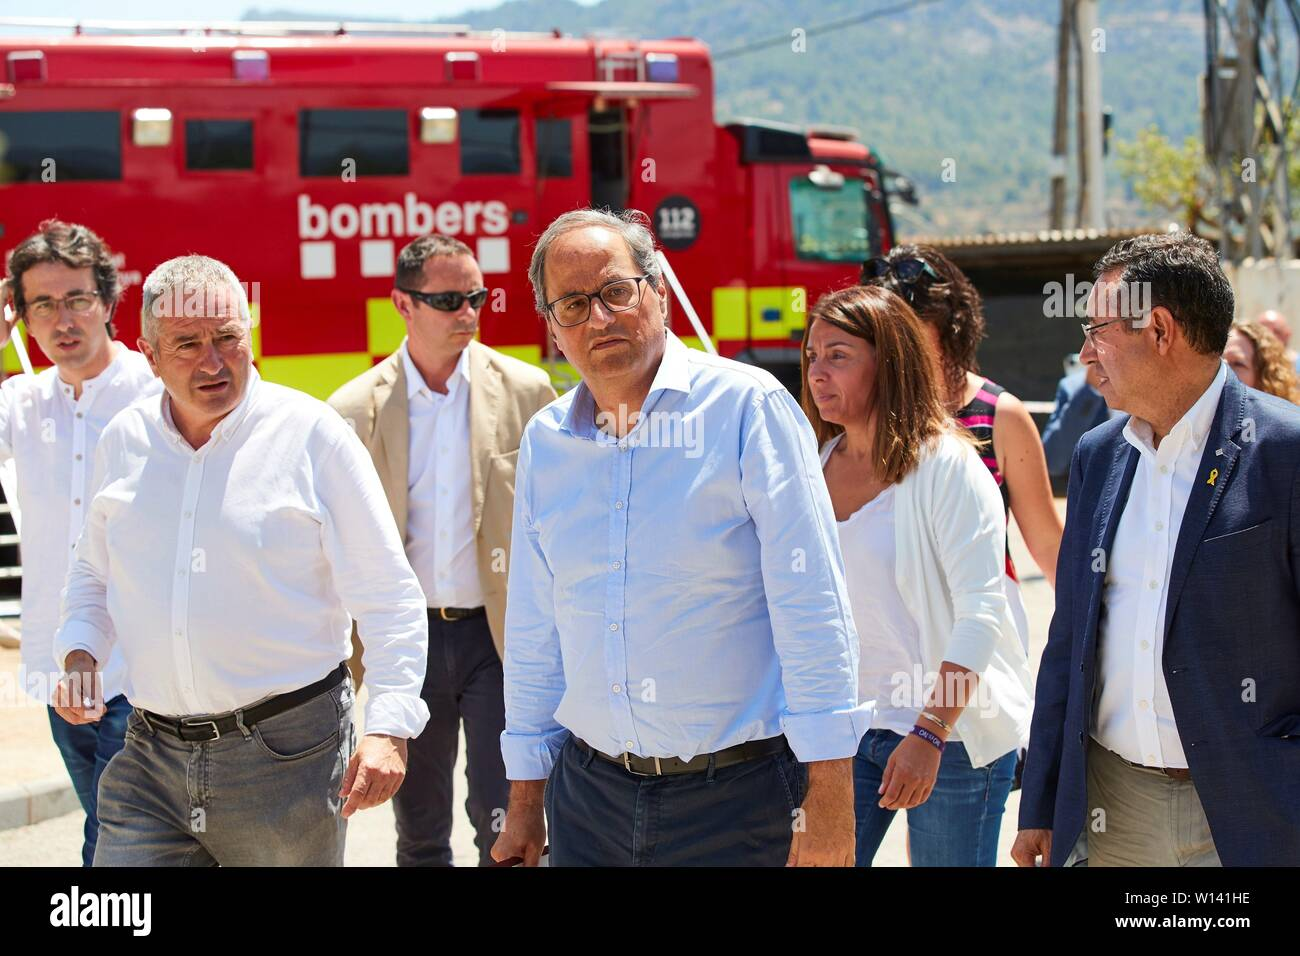 Tarragona, Spain. 30th June, 2019. Catalan regional President, Quim Torra (C), during meeting with mayors of towns in Ribera d'Ebre local administrative division in Vinebre town, Tarragona, Spain, 30 June 2019, to analyze the situation that caused the fire declared 26 June 2019 that burnt more than 6,000 hectares of land. Credit: EFE News Agency/Alamy Live News - Stock Image